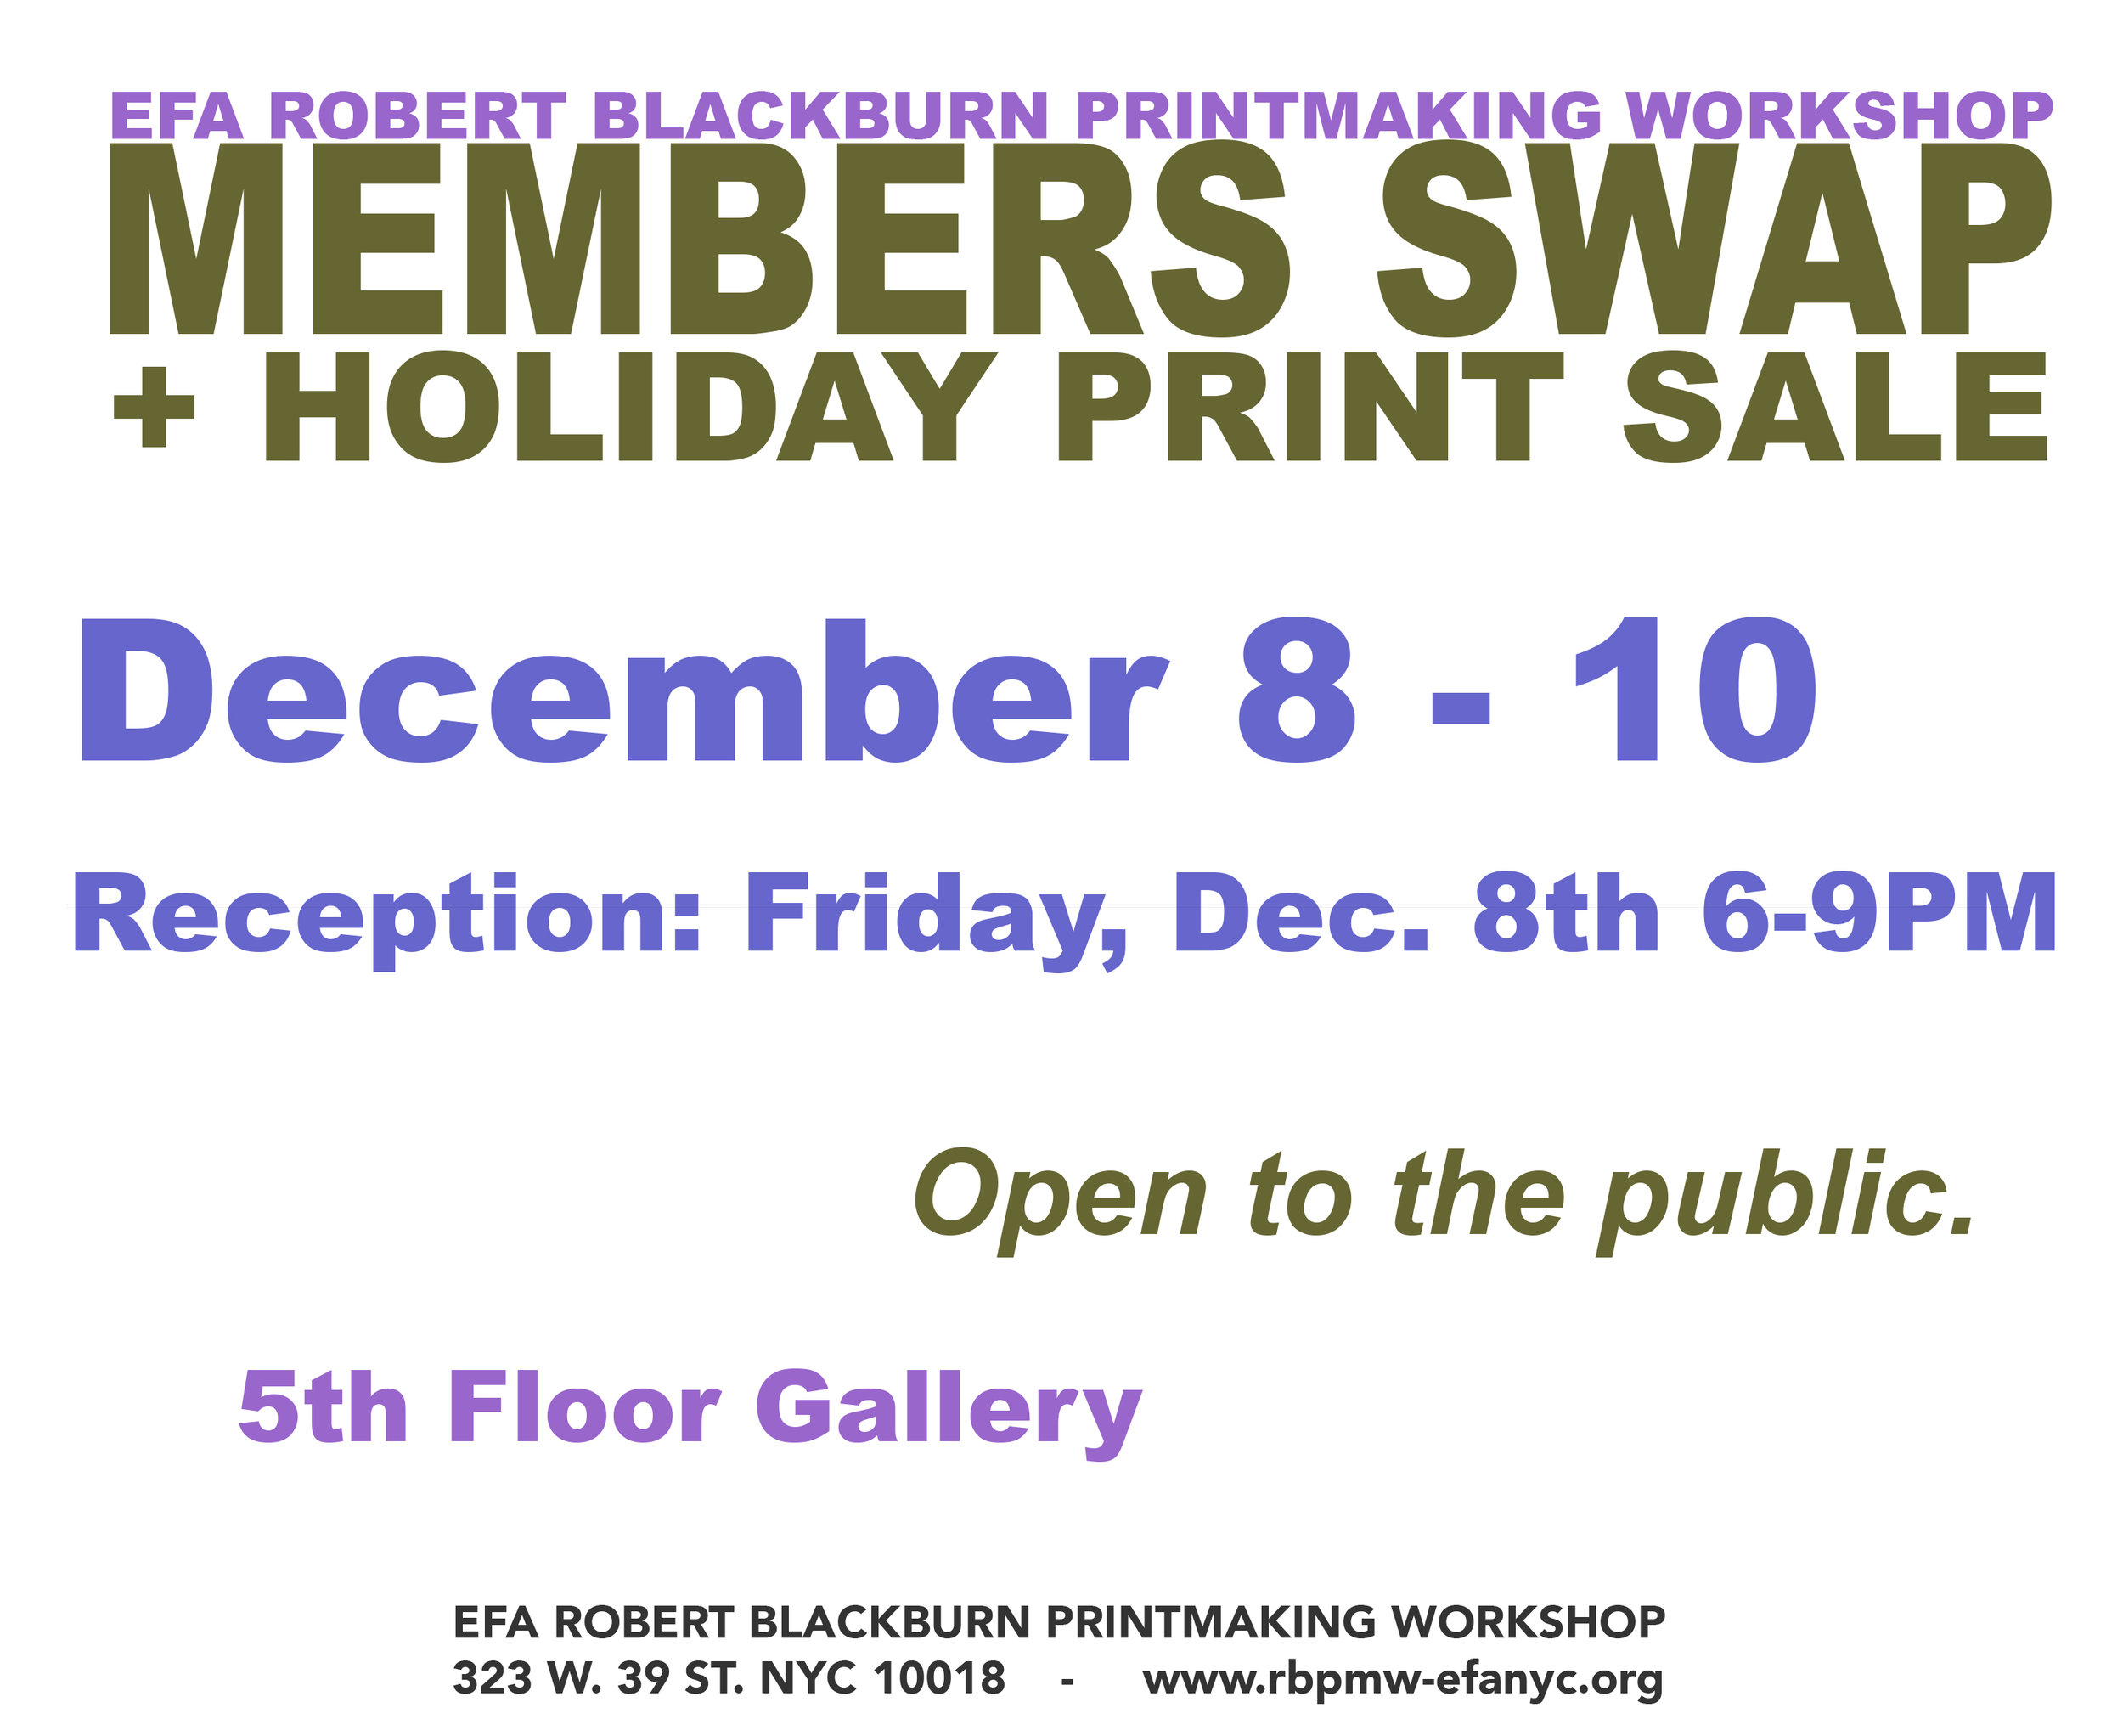 MEMBERS SWAP + HOLIDAY PRINT SALE   December 8 - 10 - Blackburn 20|20